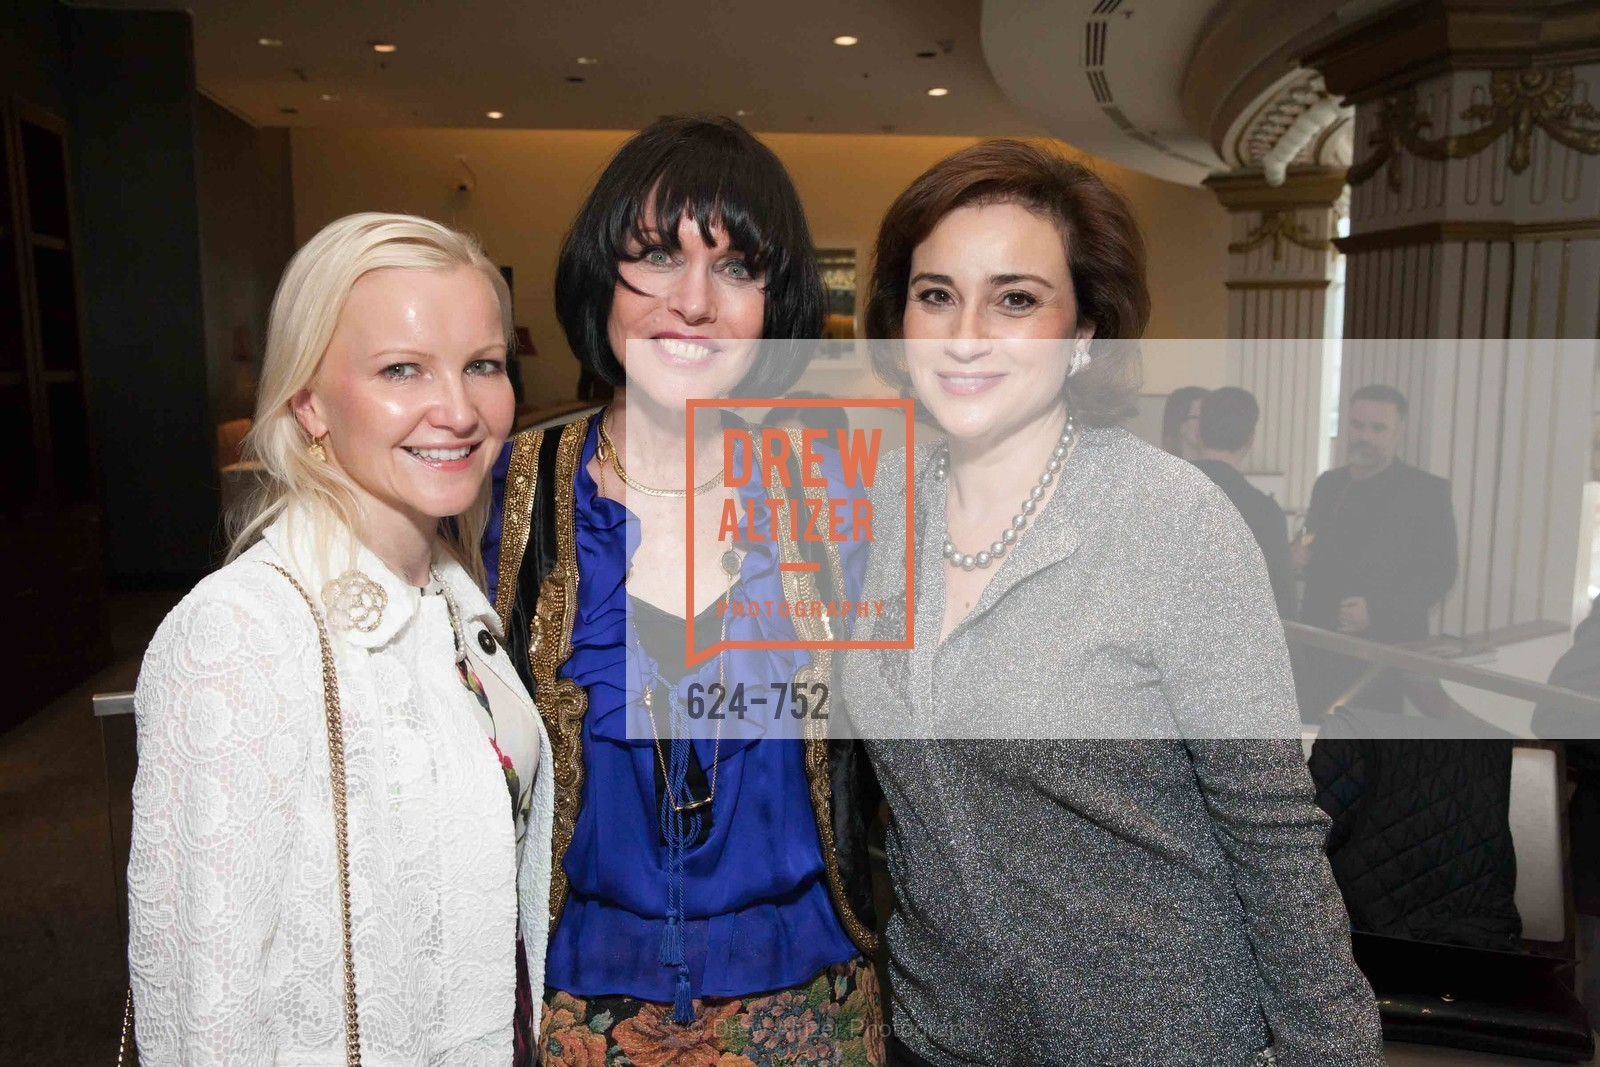 Nathalie Delrue McGuire, Christine Suppes, Dolly Chammas, Electric Fashion Book Signing with Christine Suppes & Ken Downing at THE ROTUNDA, NEIMAN MARCUS, US, May 27th, 2015,Drew Altizer, Drew Altizer Photography, full-service agency, private events, San Francisco photographer, photographer california